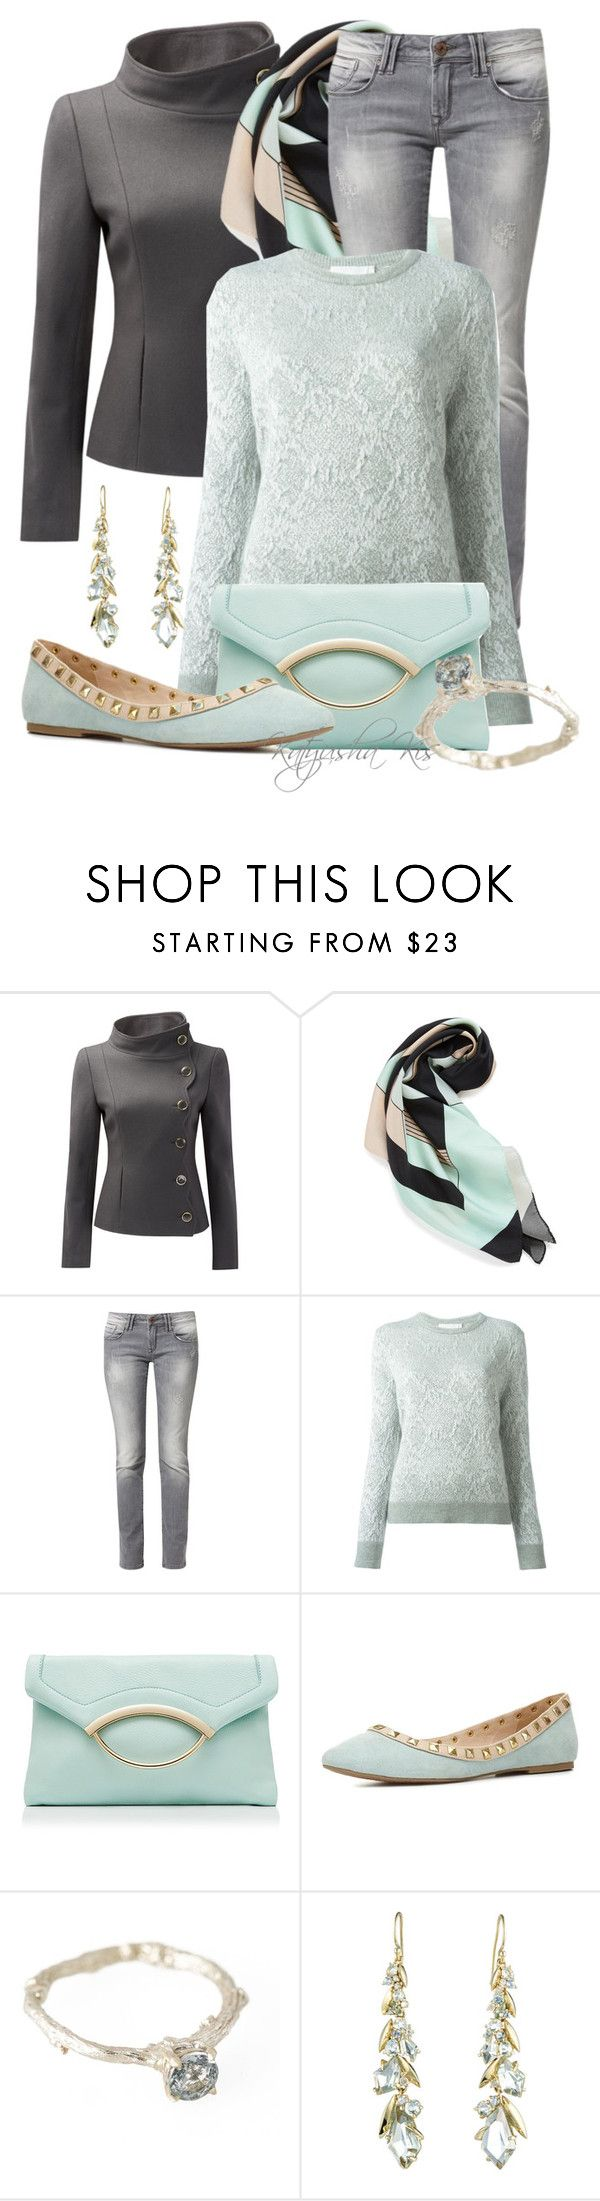 """Mint & Gray with a side of flats"" by katyusha-kis ❤ liked on Polyvore featuring Louisa Parris, Mavi, Christian Wijnants, Forever New, Charlotte Russe, Michelle Oh and Alexis Bittar"